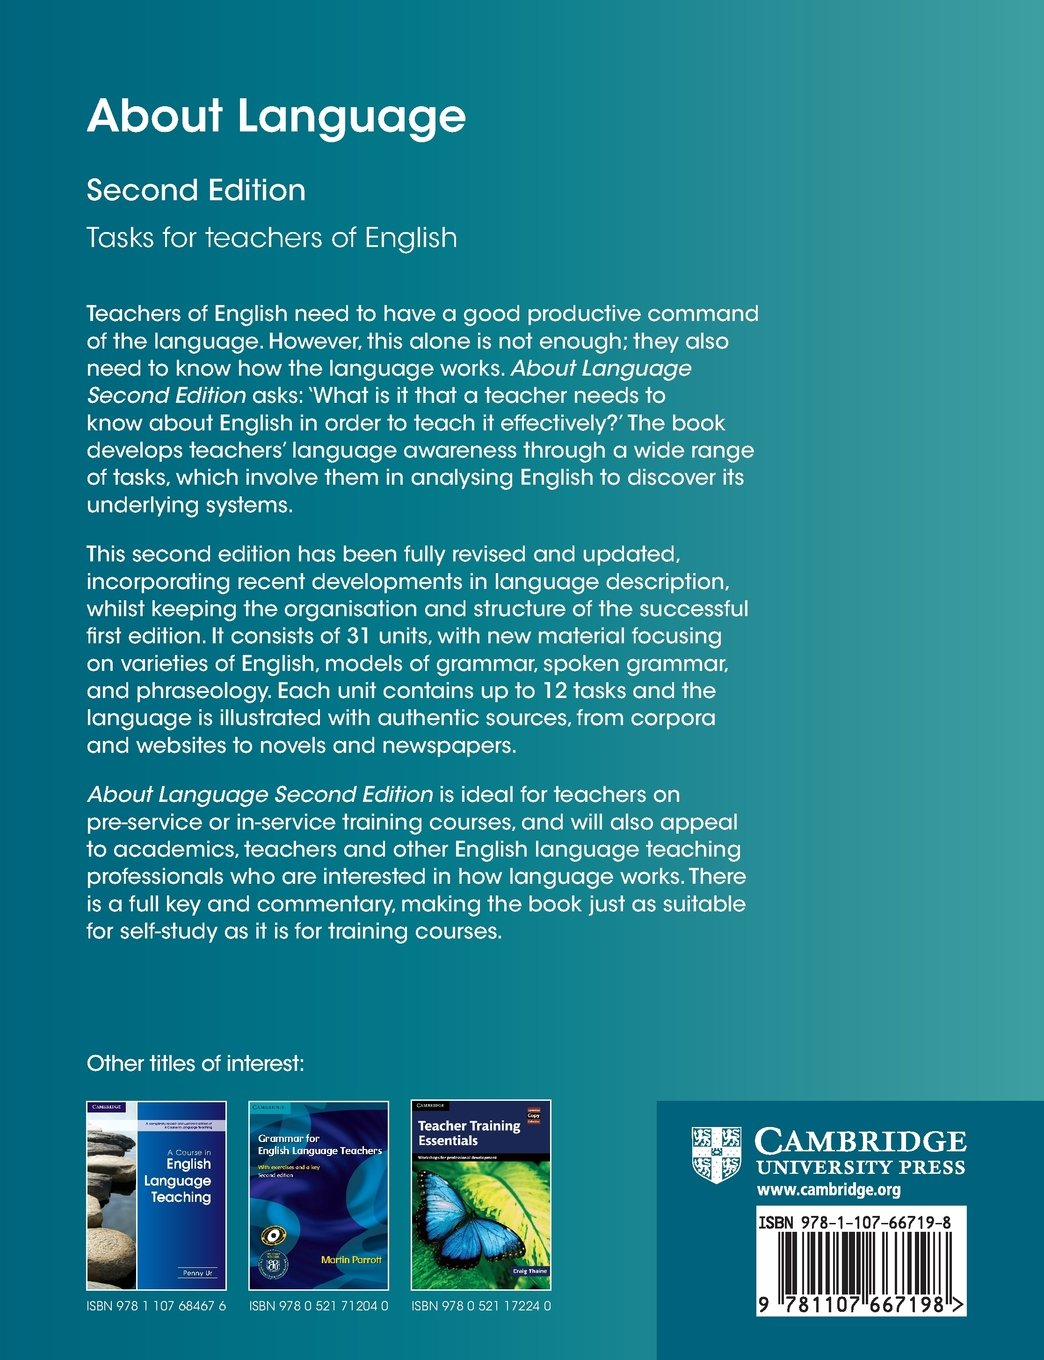 About Language: Tasks for Teachers of English (Cambridge Teacher Training and Development) by CAMBRIDGE UNIVERSITY PRESS